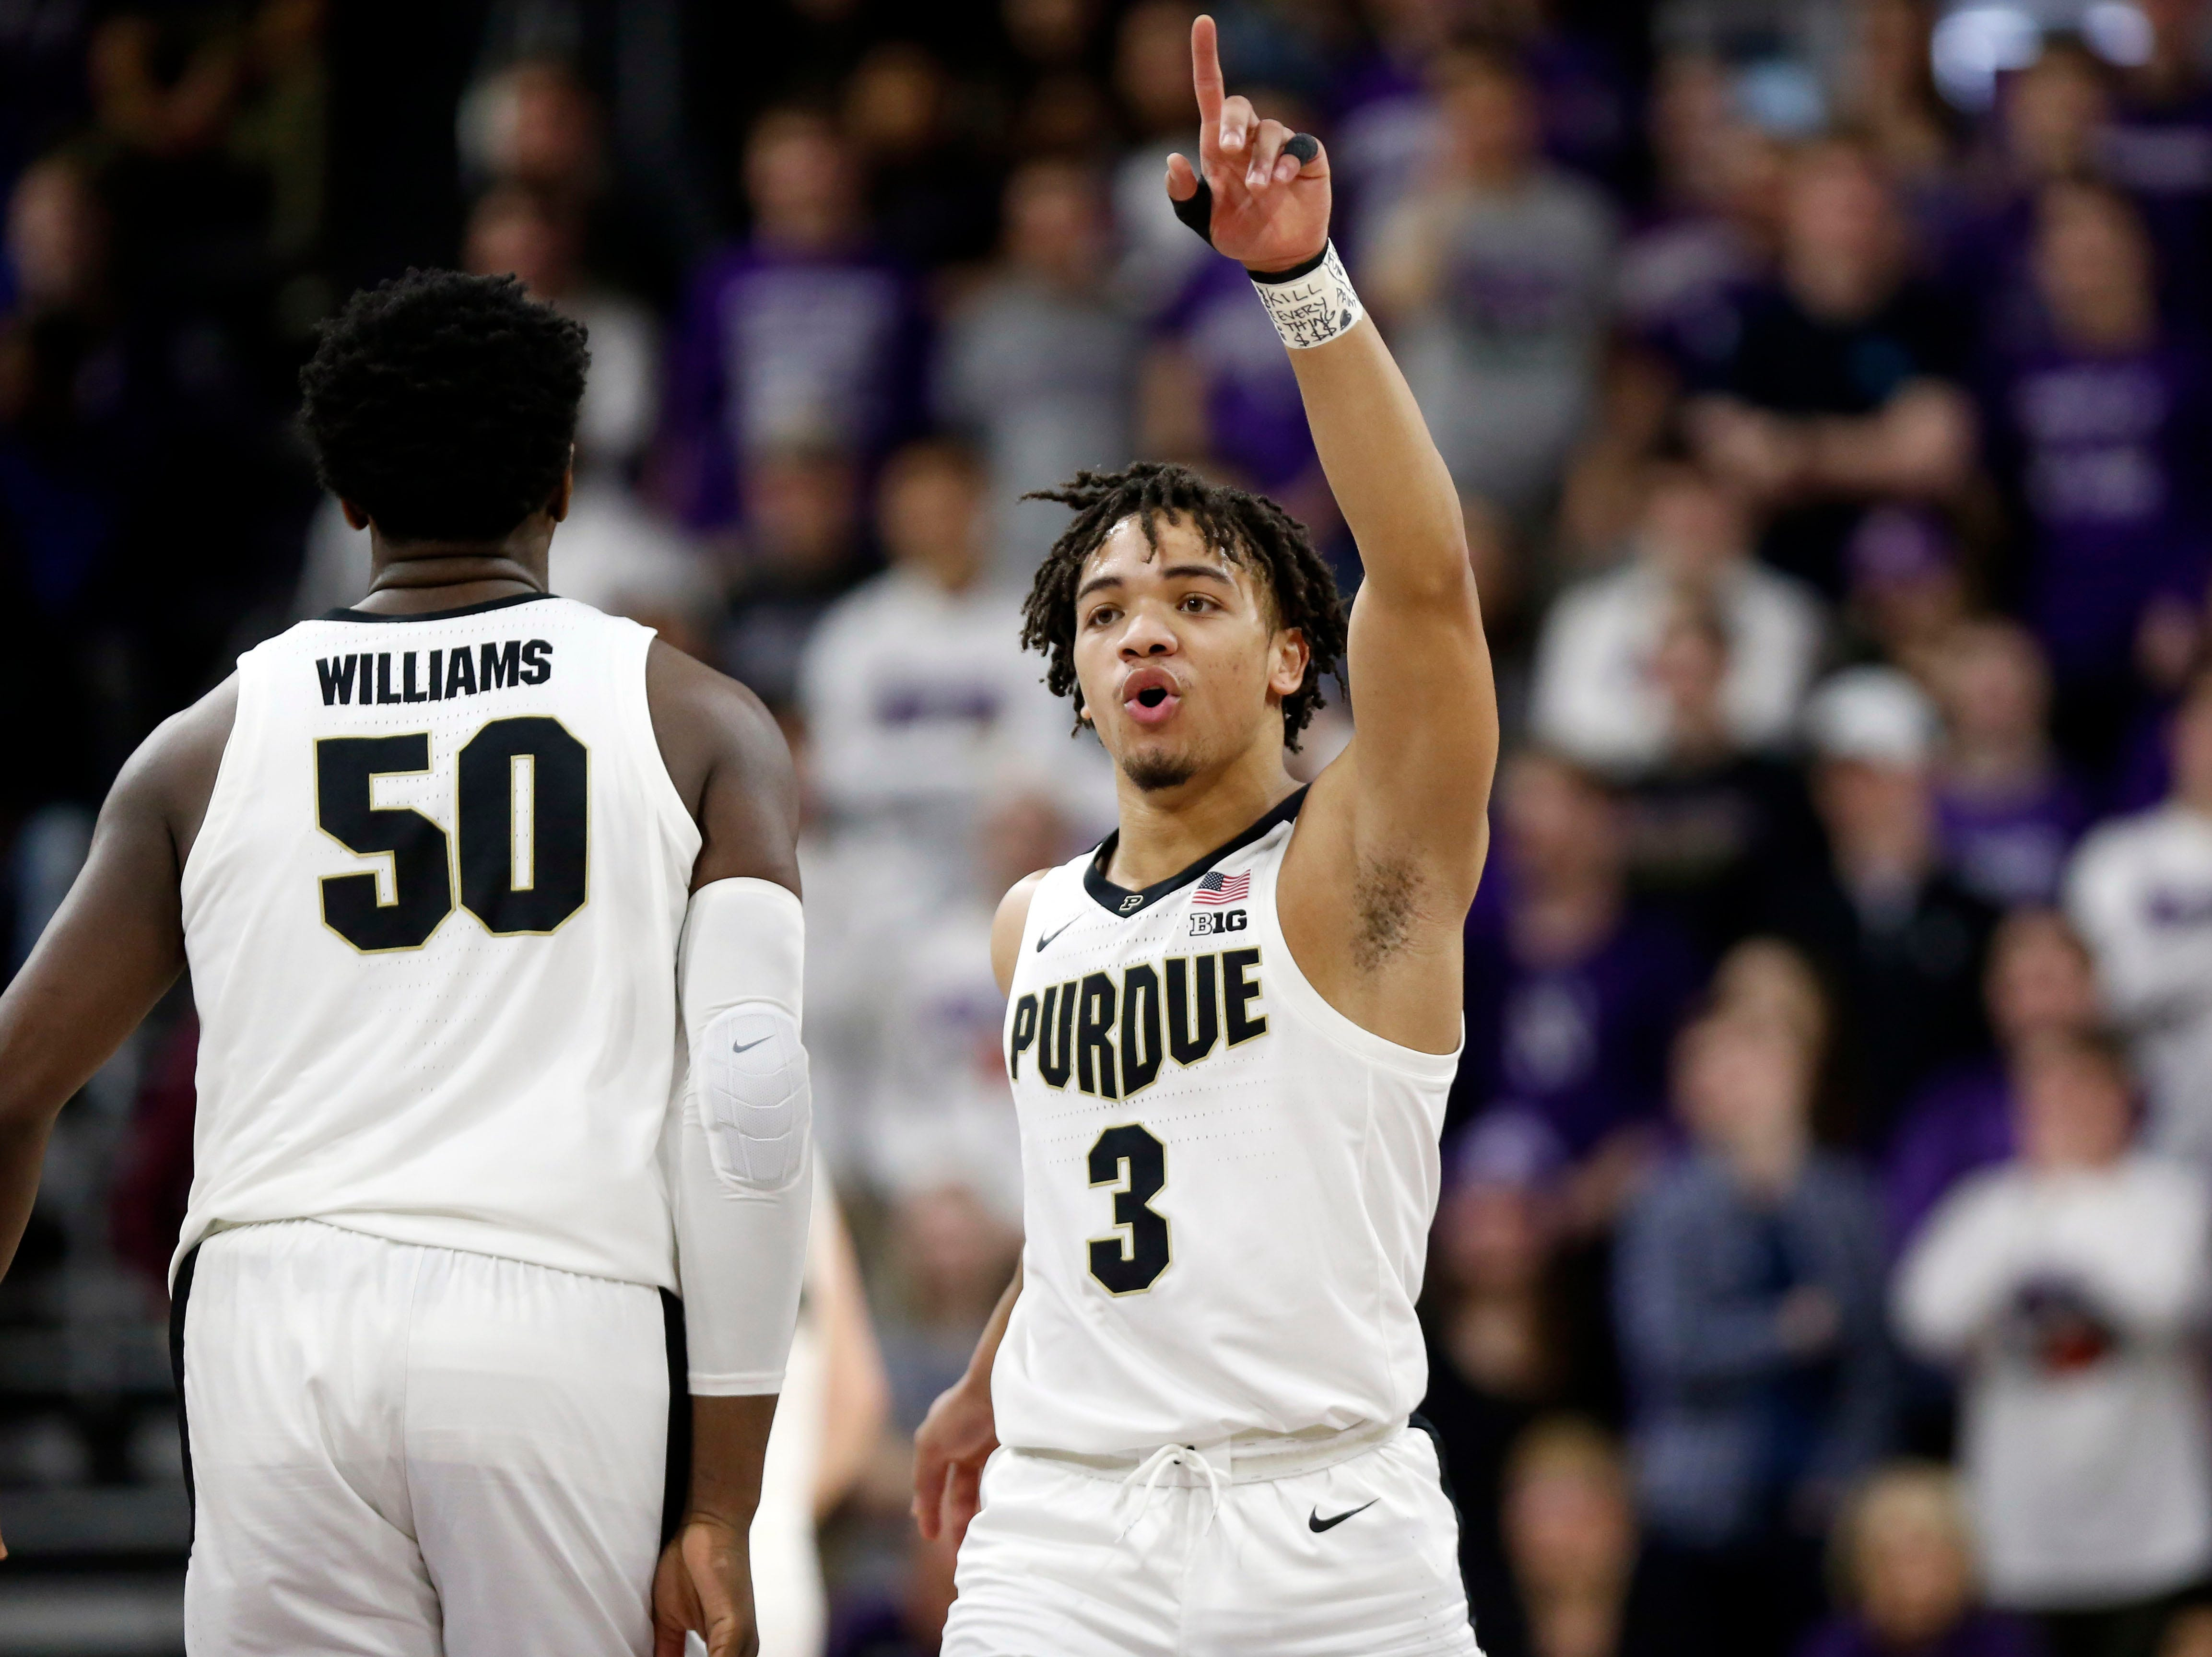 Mar 9, 2019; Evanston, IL, USA; Purdue Boilermakers guard Carsen Edwards (3) reacts on the court during the first half against the Northwestern Wildcats at Welsh-Ryan Arena. Mandatory Credit: Nuccio DiNuzzo-USA TODAY Sports